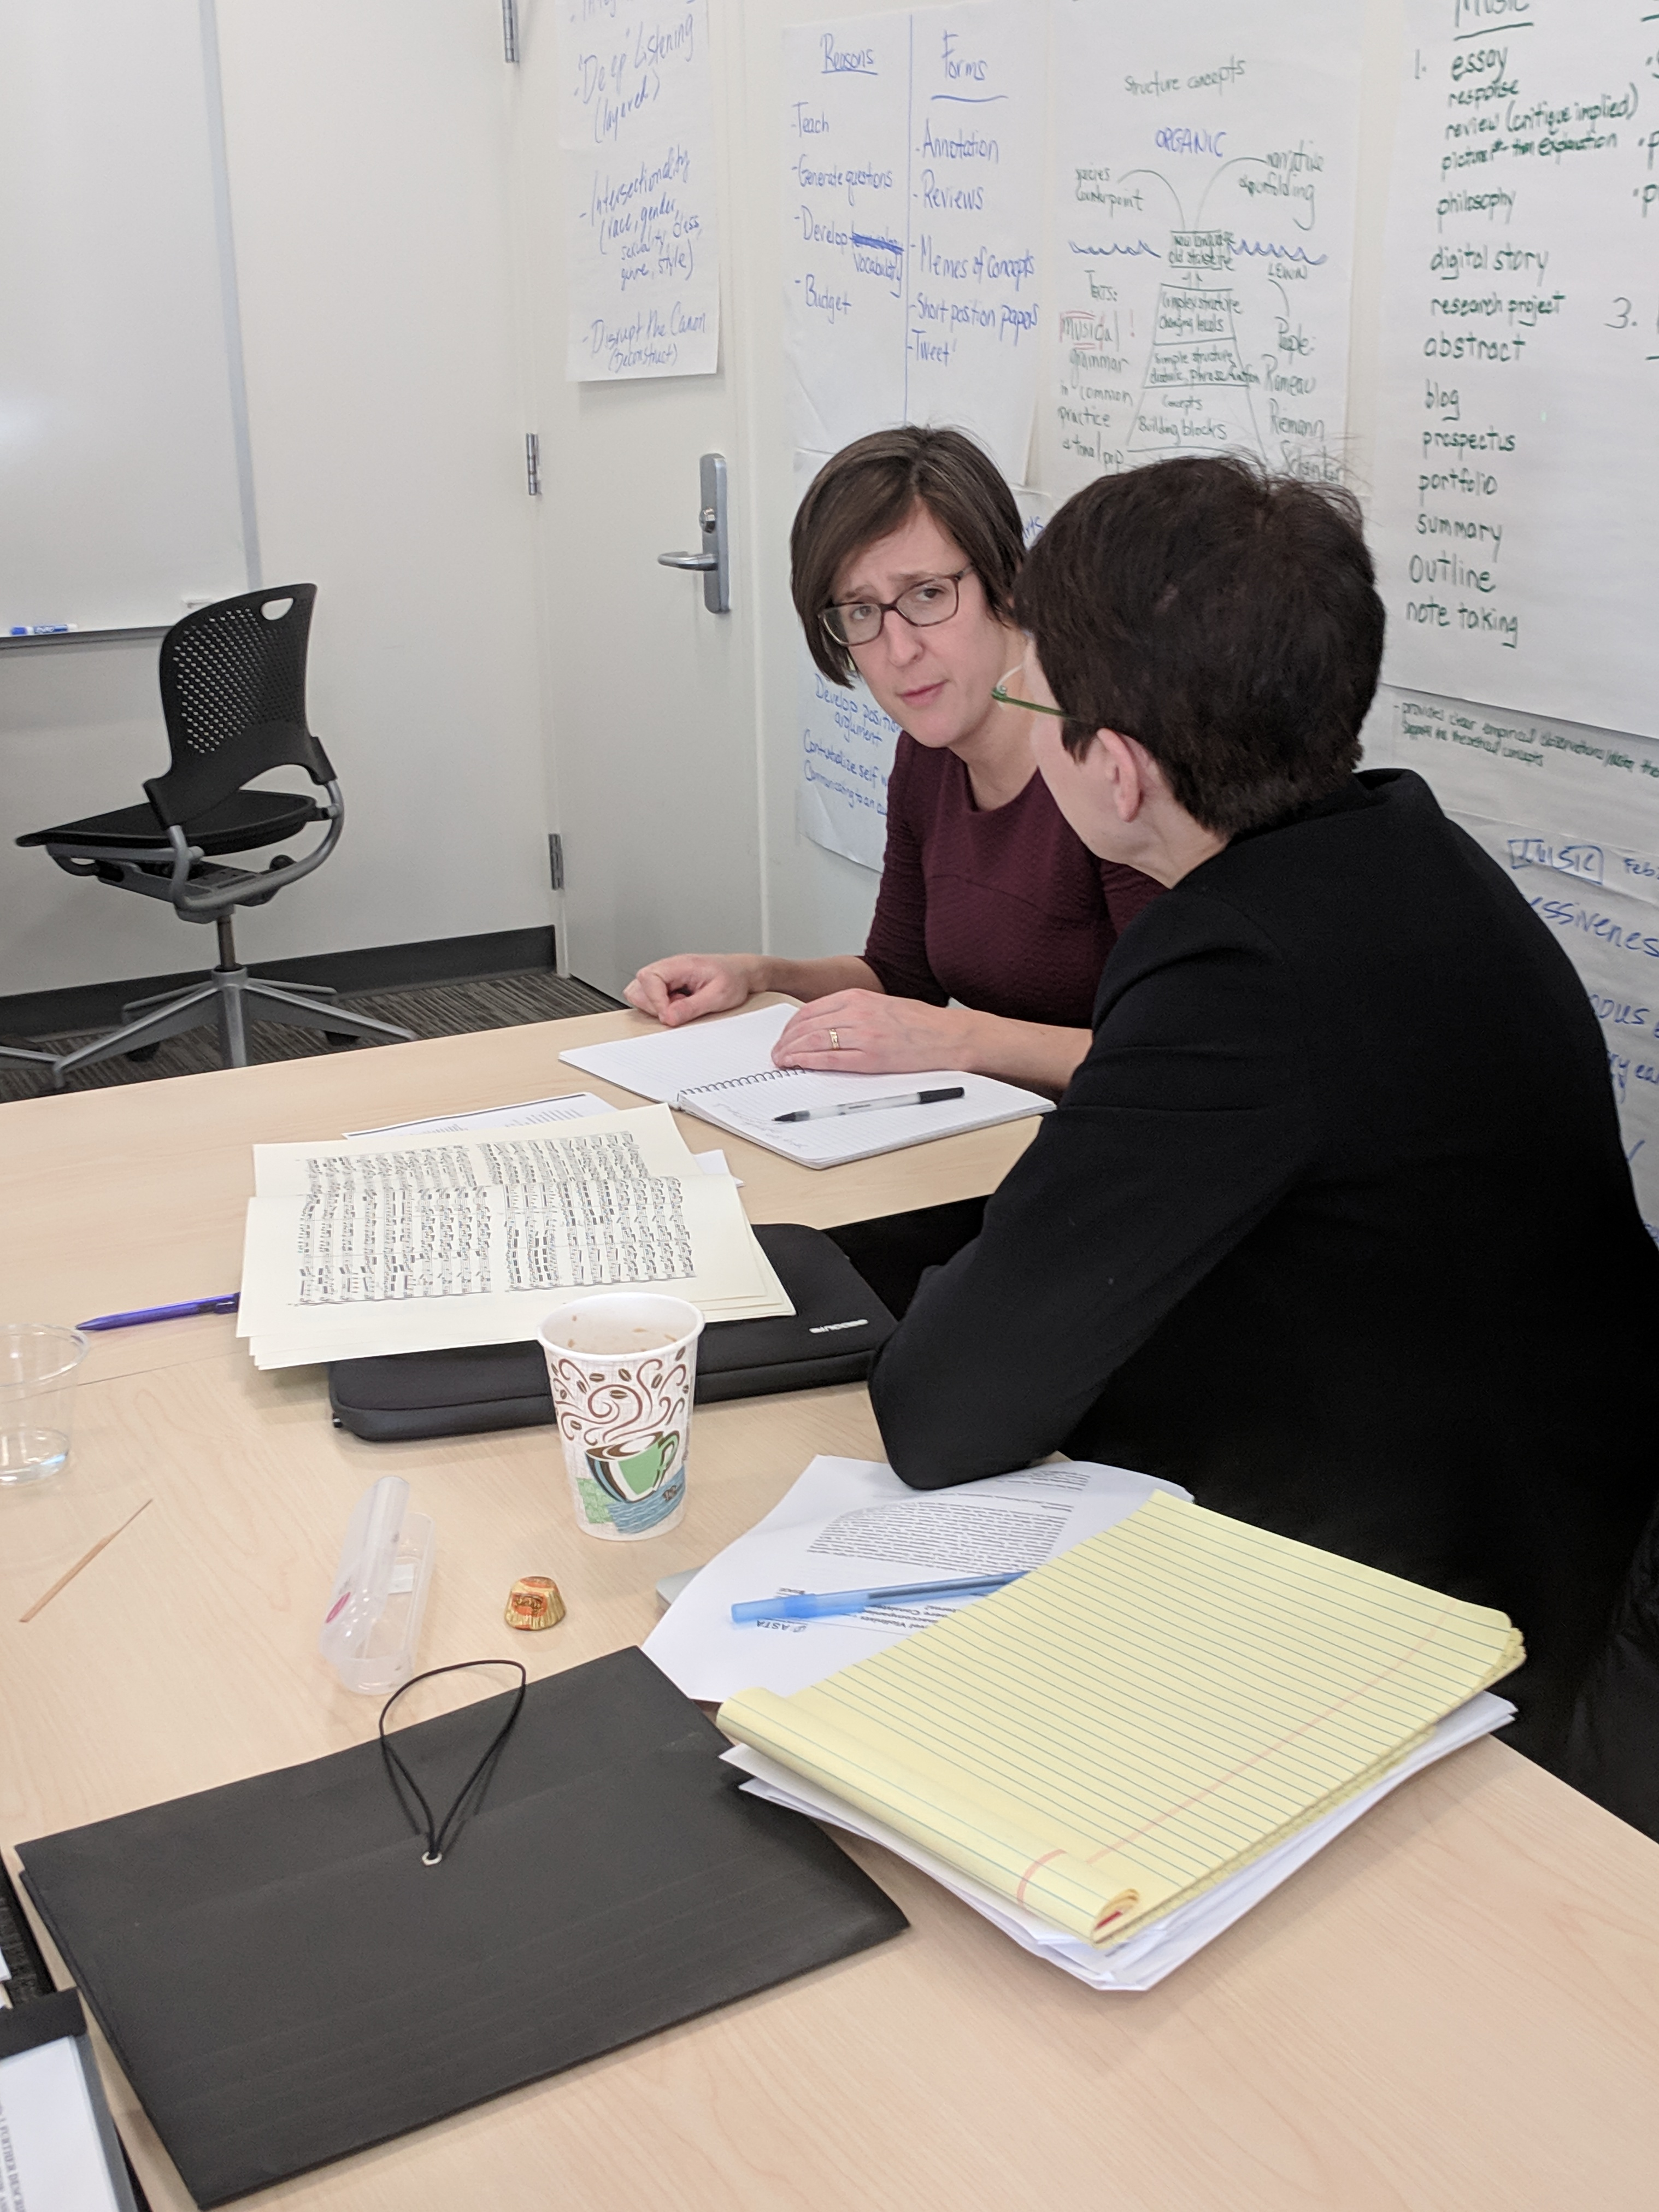 Brenda Mitchell (right) talks with Associate Professor of Art History Pepper Stetler (left) about a musical score during an HCWE Faculty Writing Fellows activity.